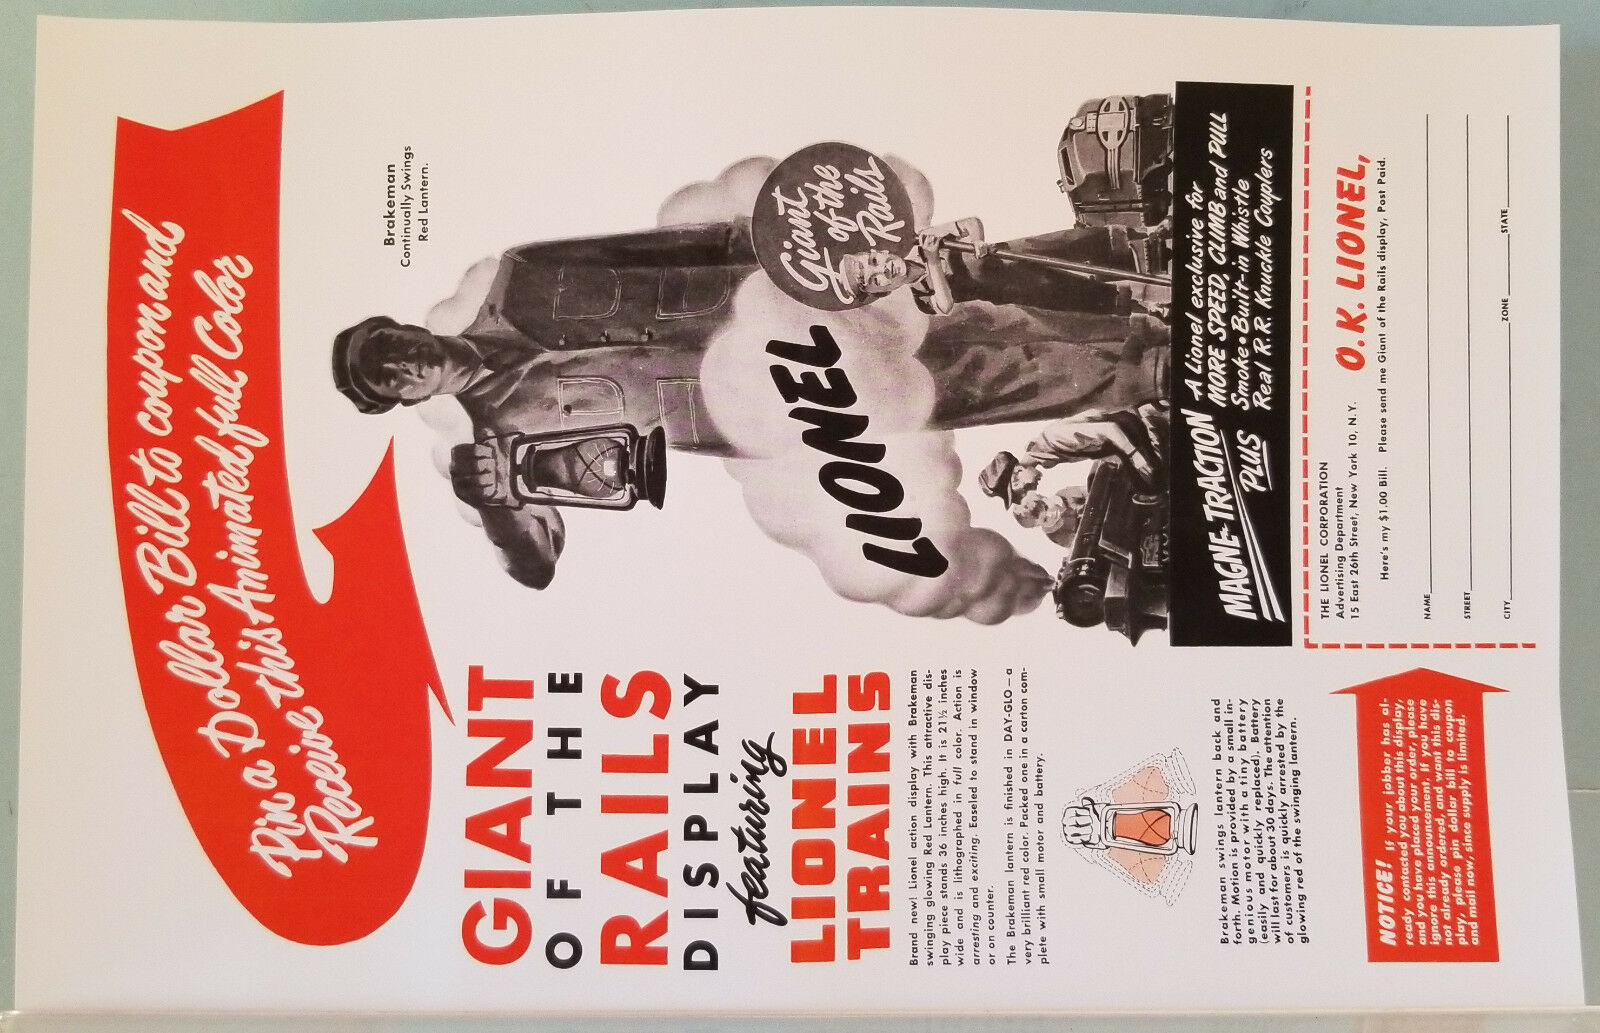 Lionel Giant of the Rails Super Reproduction Rare Dealer Poster 1951